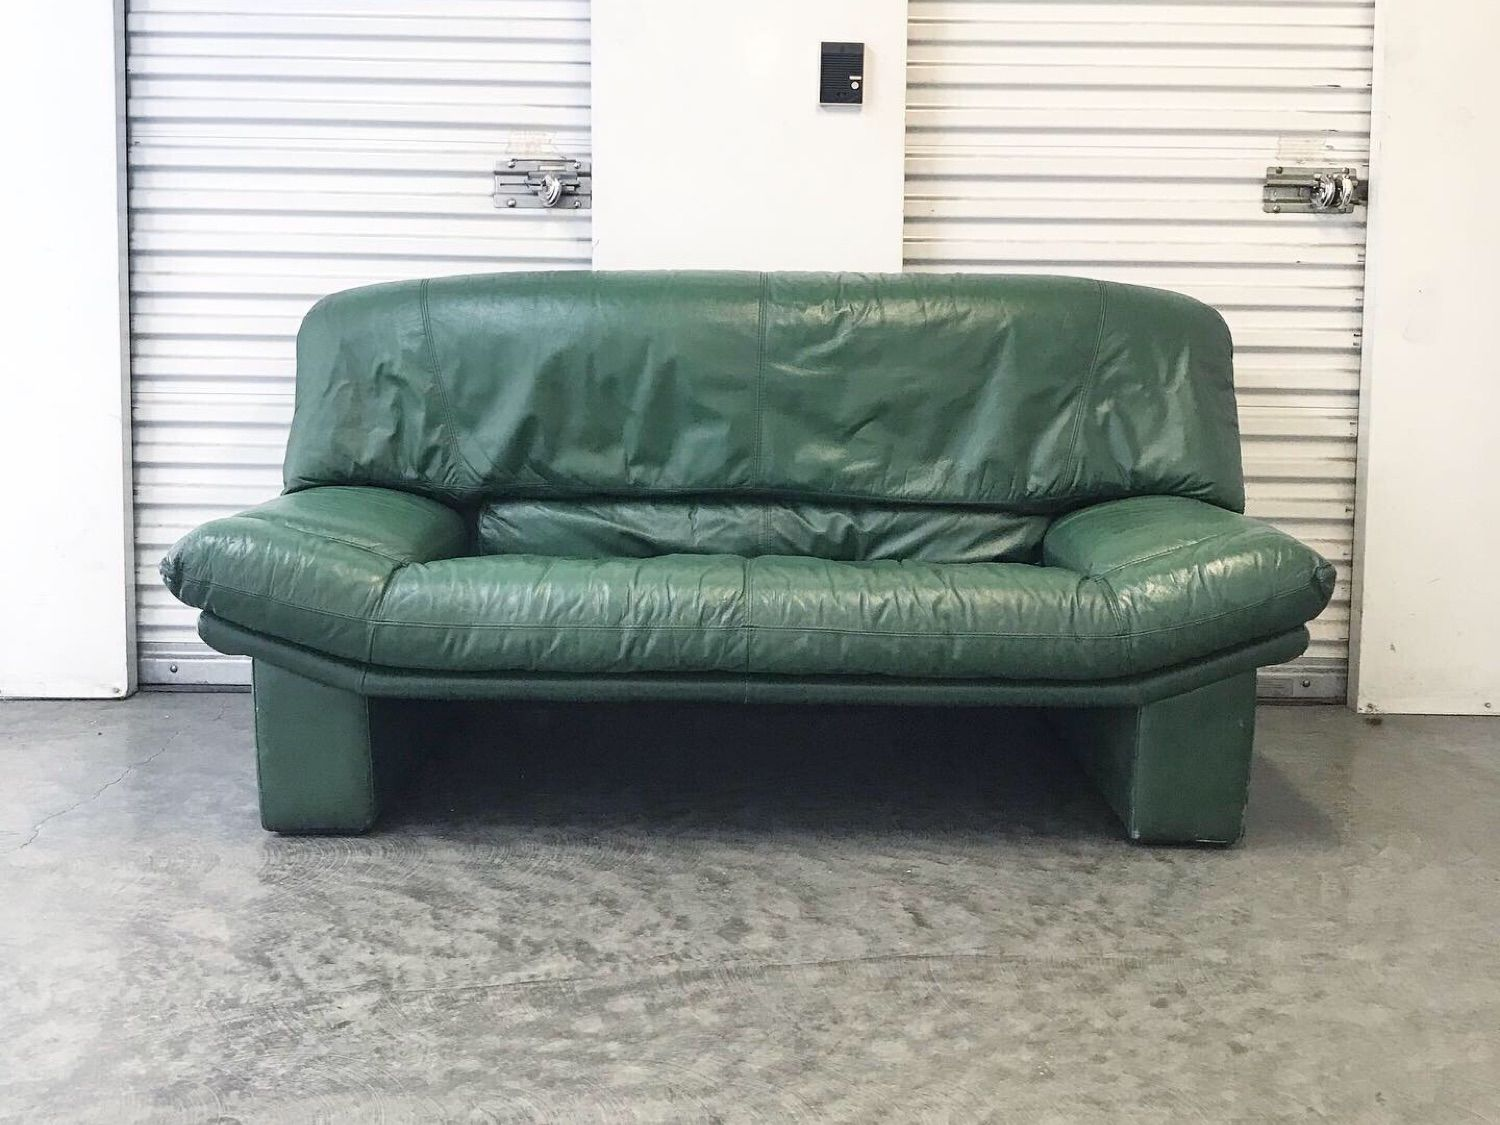 Prime Vintage 80S Italian Green Leather Loveseat Sofa Andrewgaddart Wooden Chair Designs For Living Room Andrewgaddartcom